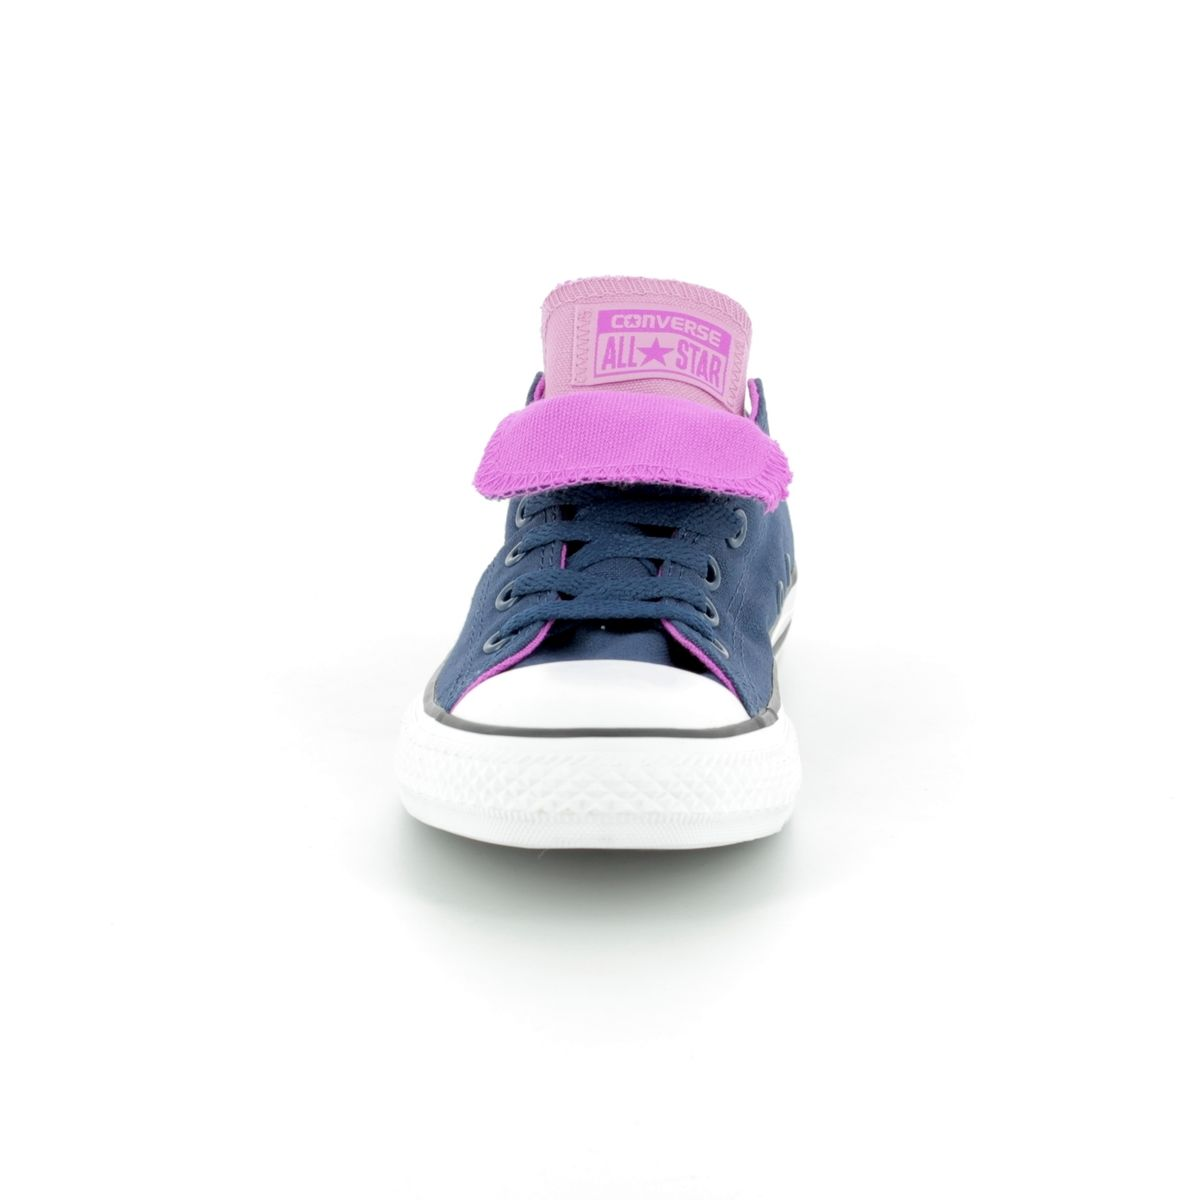 4c9056da6004 Converse Trainers - Navy multi - 660001C All Star Double Tongue